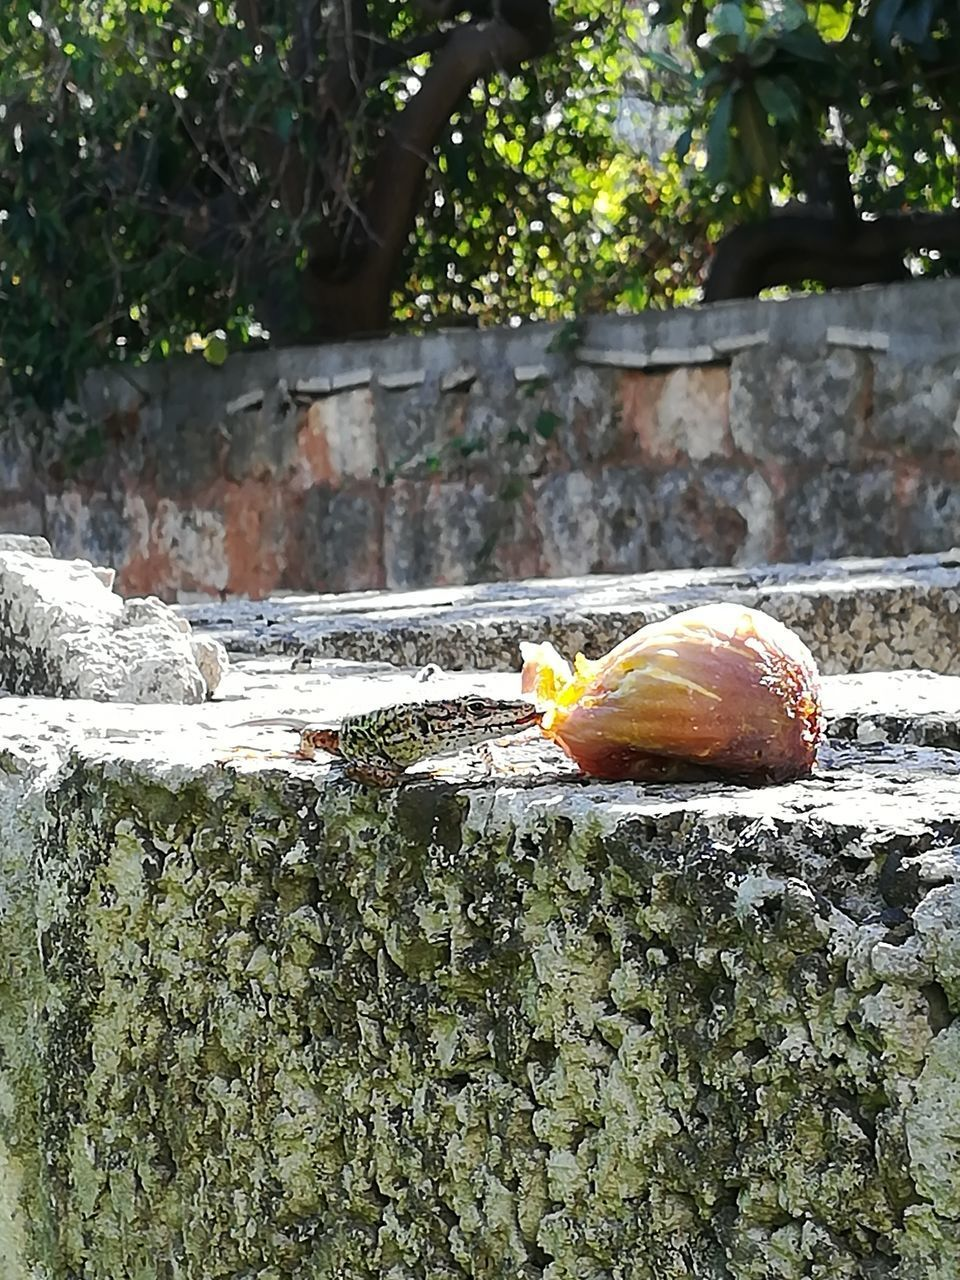 day, no people, plant, animal wildlife, one animal, animals in the wild, animal, outdoors, nature, animal themes, close-up, tree, focus on foreground, wall, orange color, mollusk, retaining wall, animal shell, architecture, growth